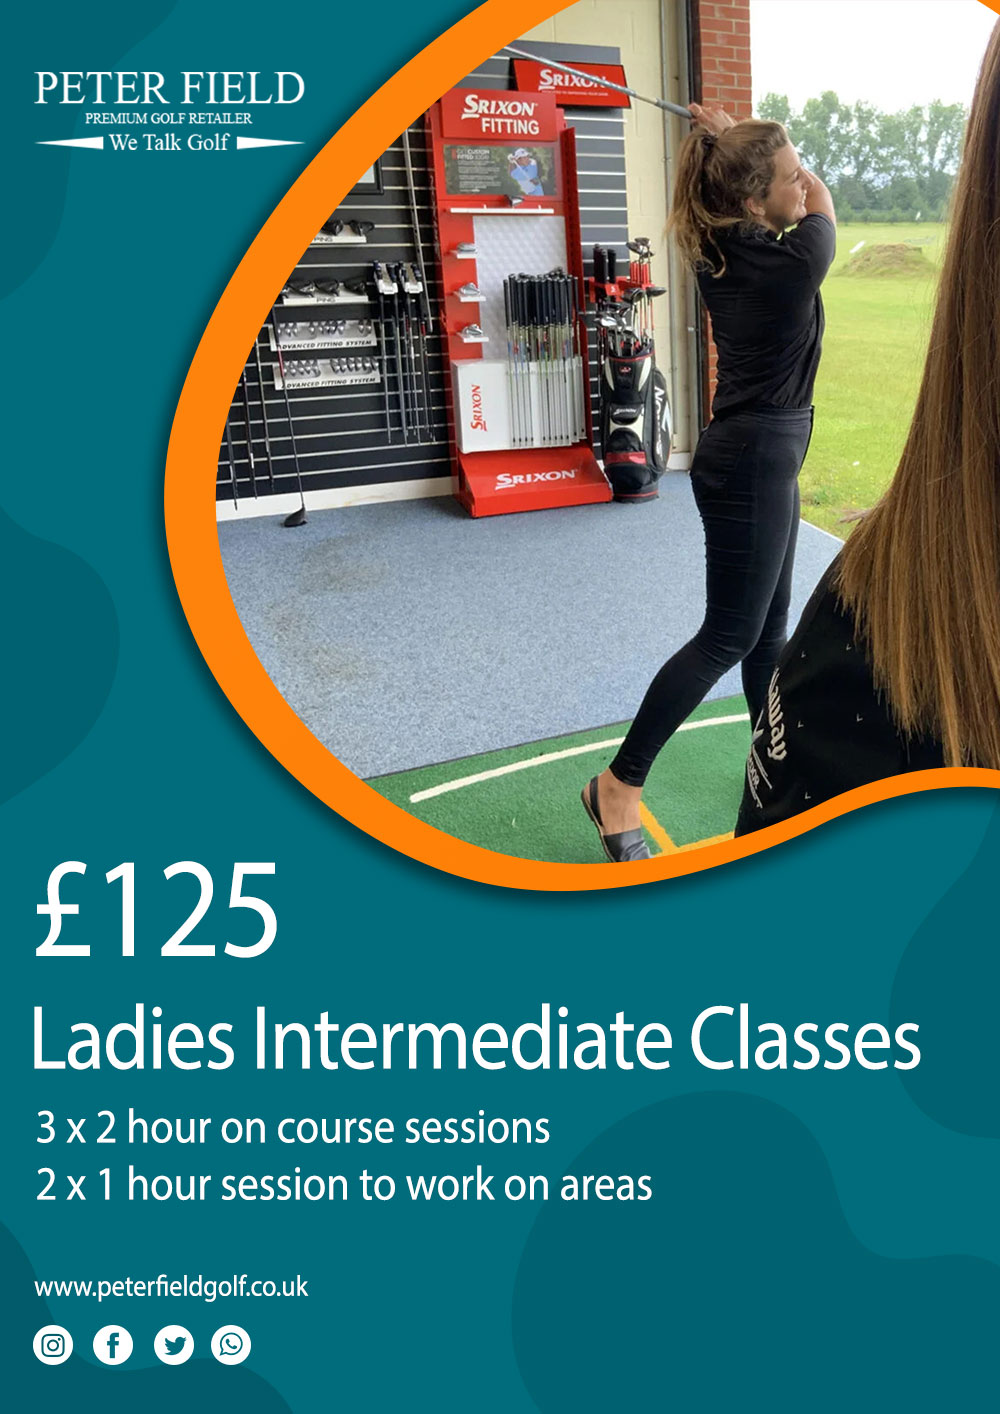 Ladies intermediate golf lessons at peter field golf club PGA pro norwich norfolk